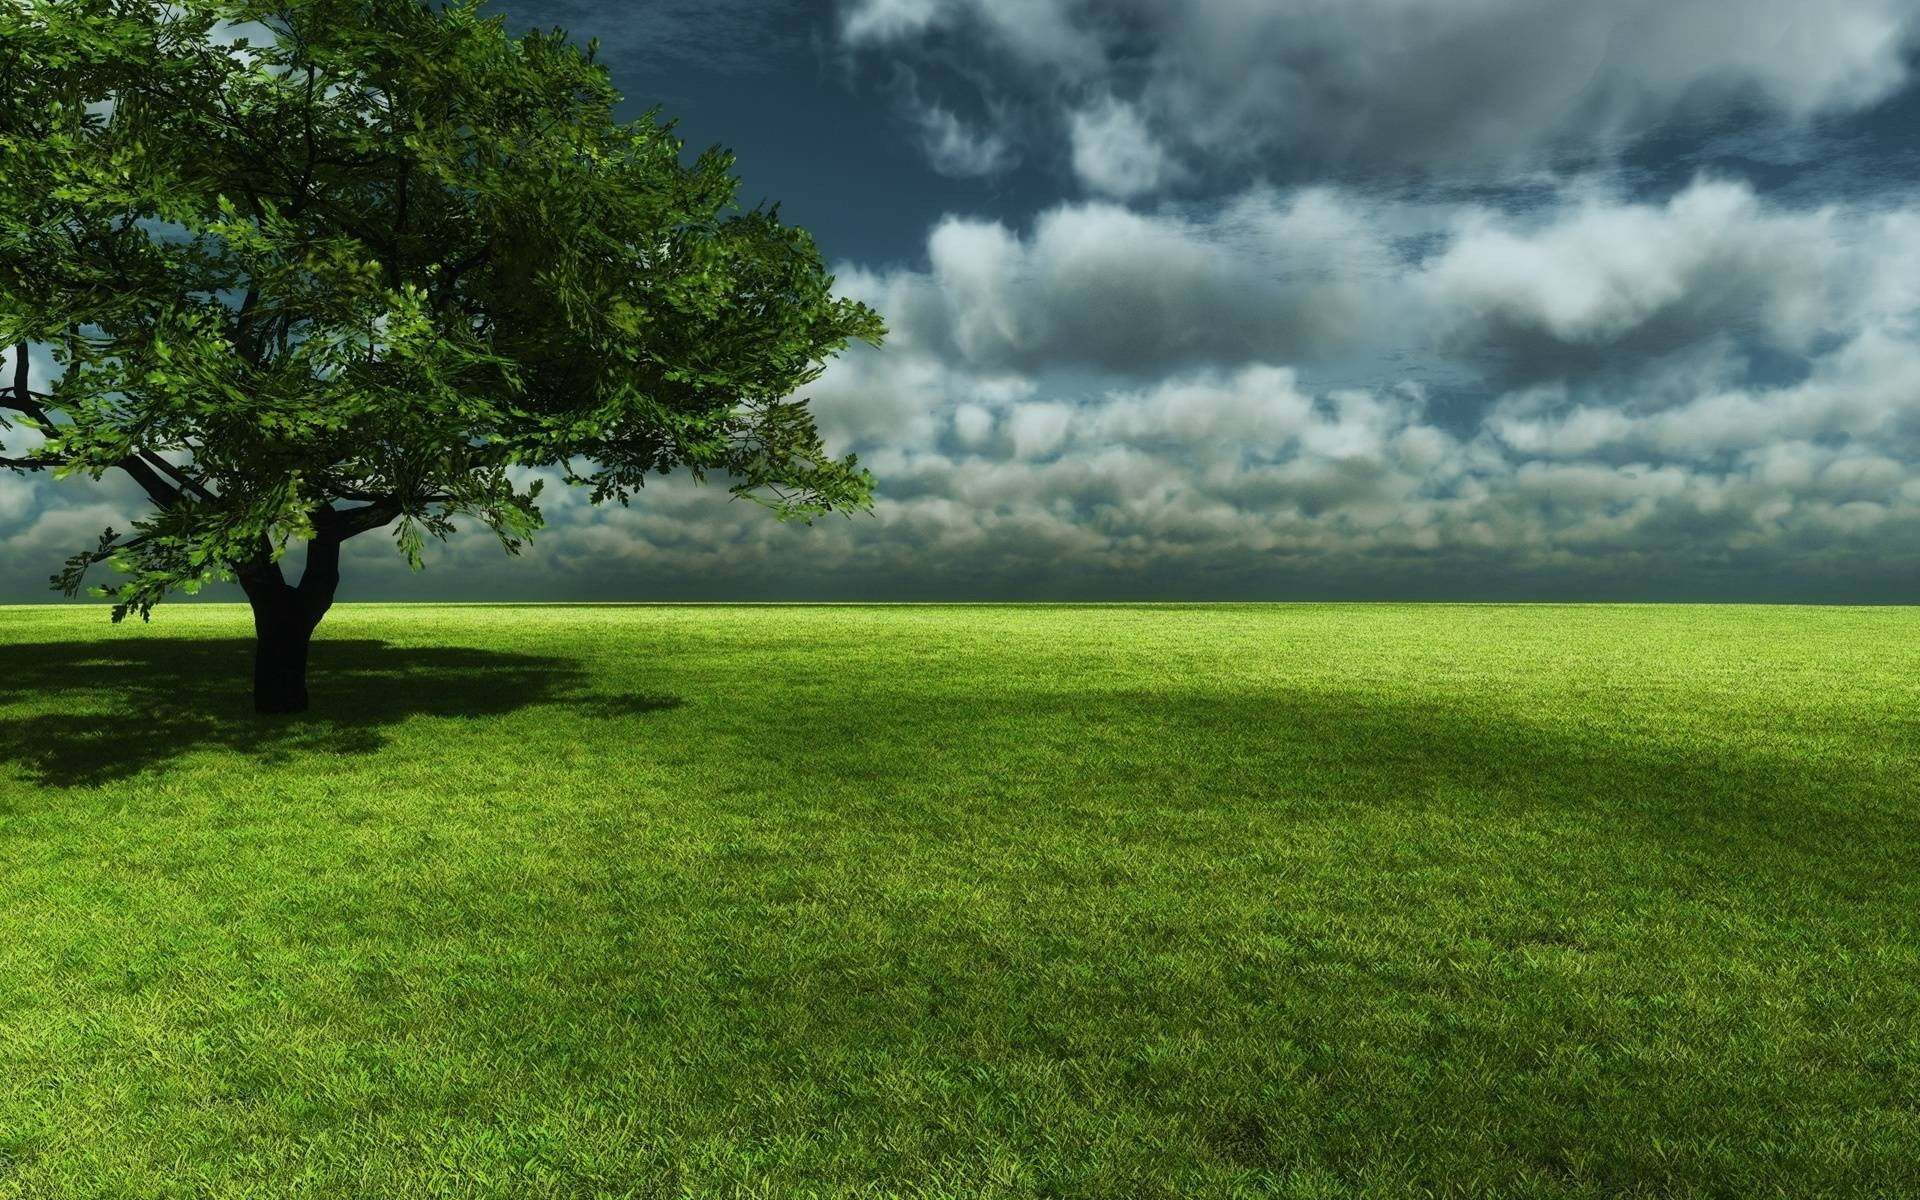 Free Very Beautiful Desktop Backgrounds That Look Amazingly Cool